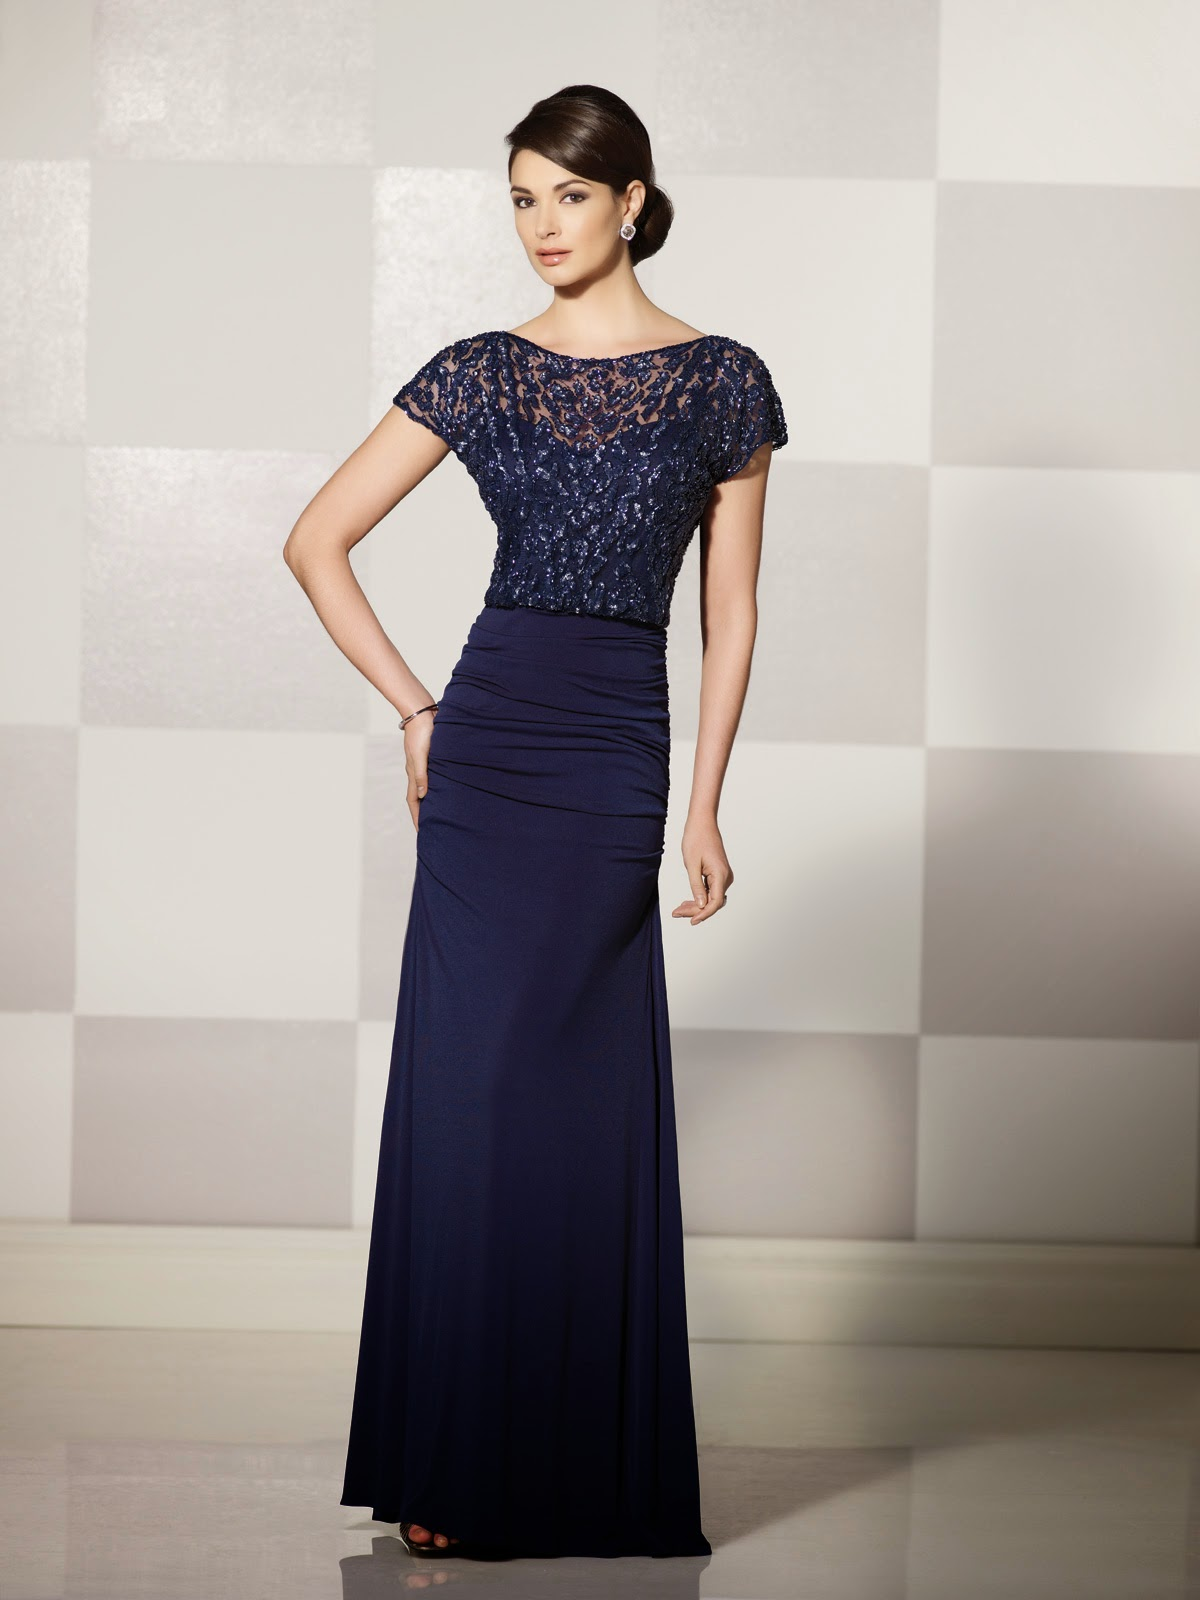 Fall Mother Of The Bride Dresses For 2014 A line gown along with